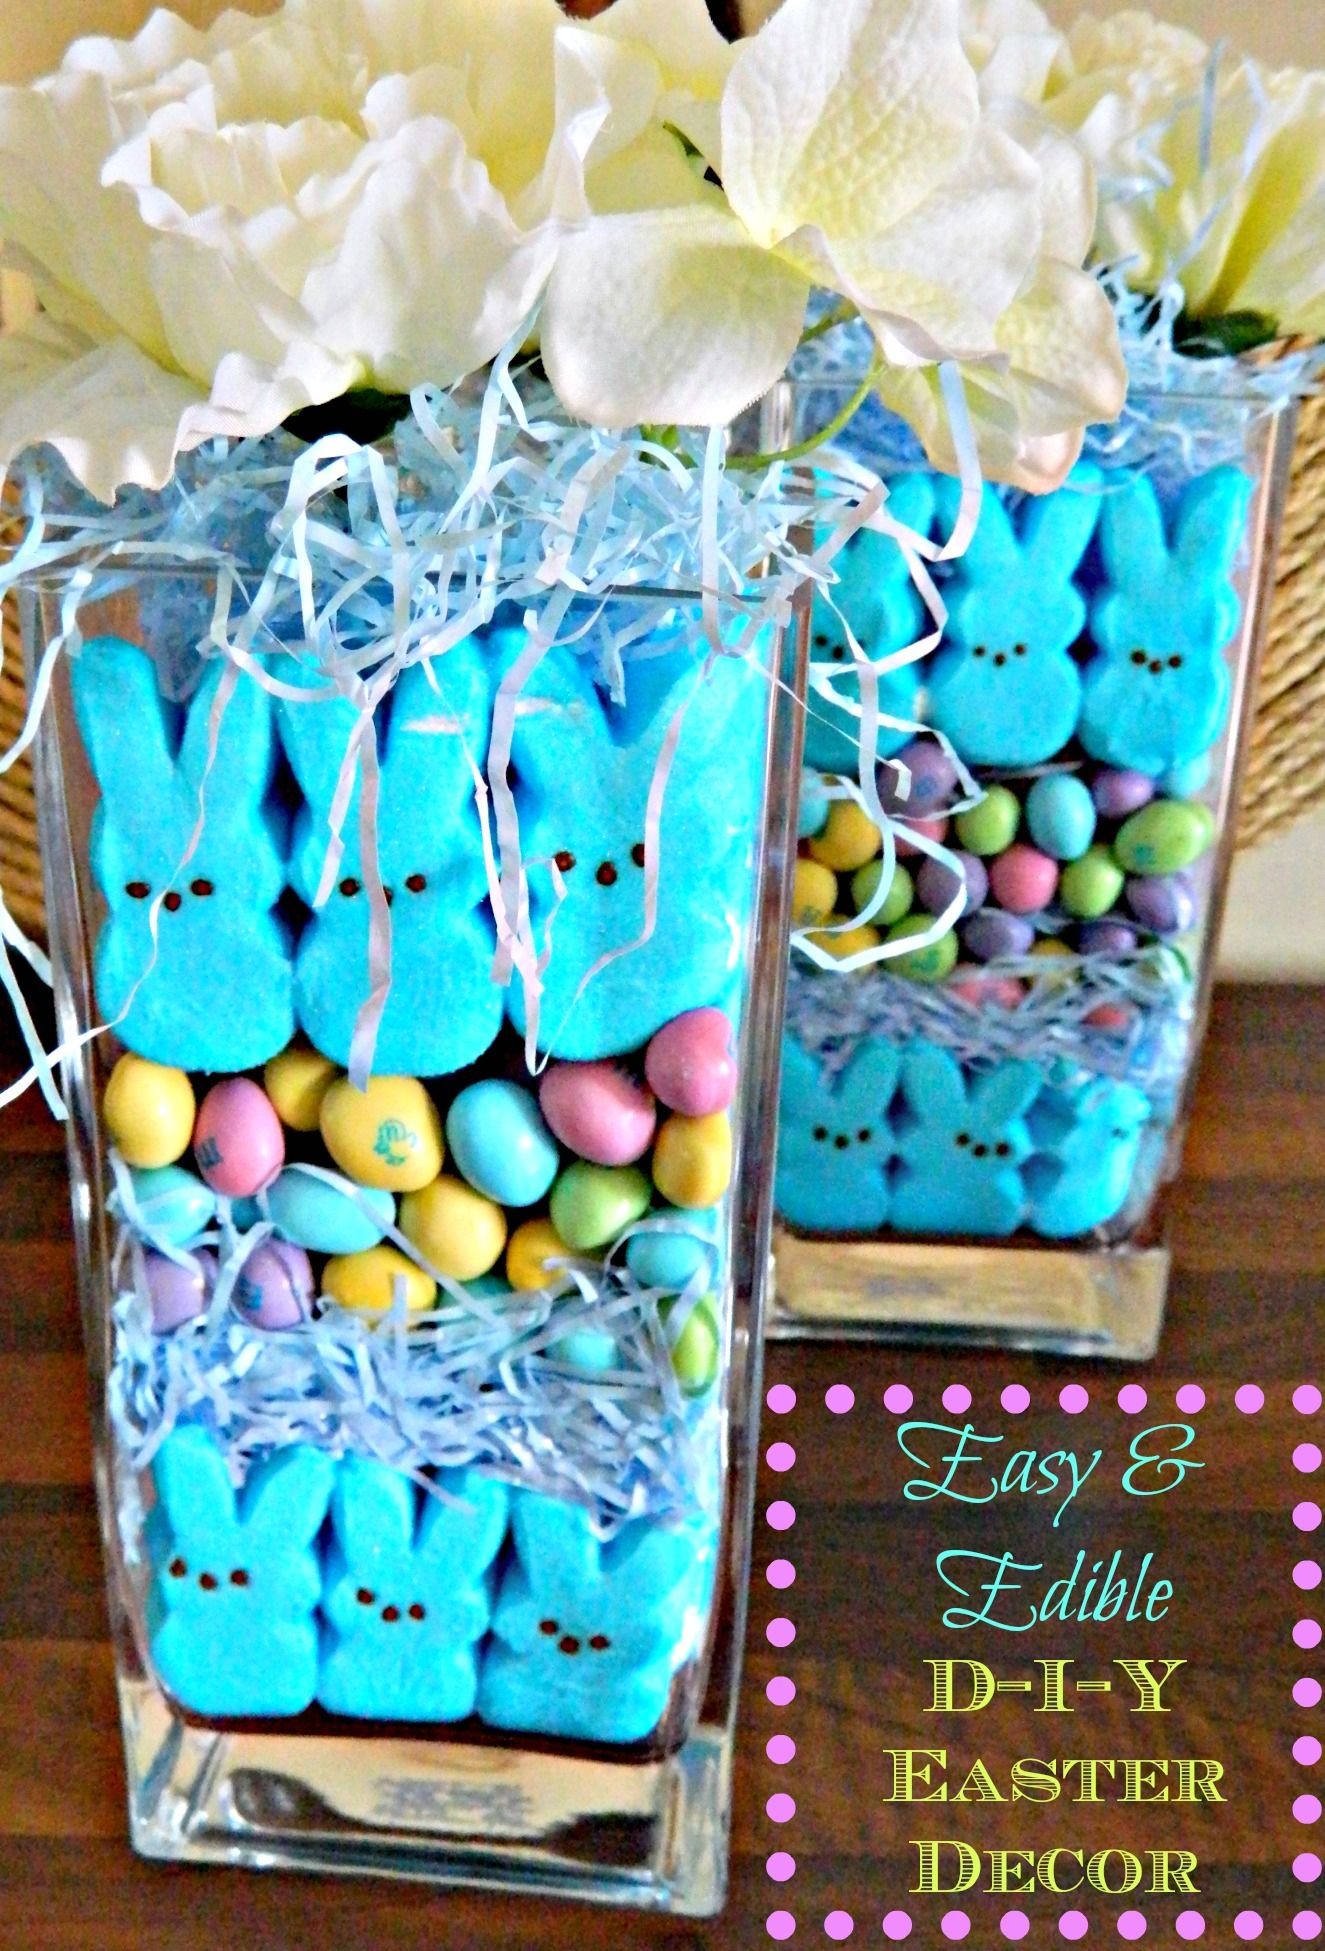 Easy d i y easter decorations easter egg and decoration easy d i y easter decorations solutioingenieria Images